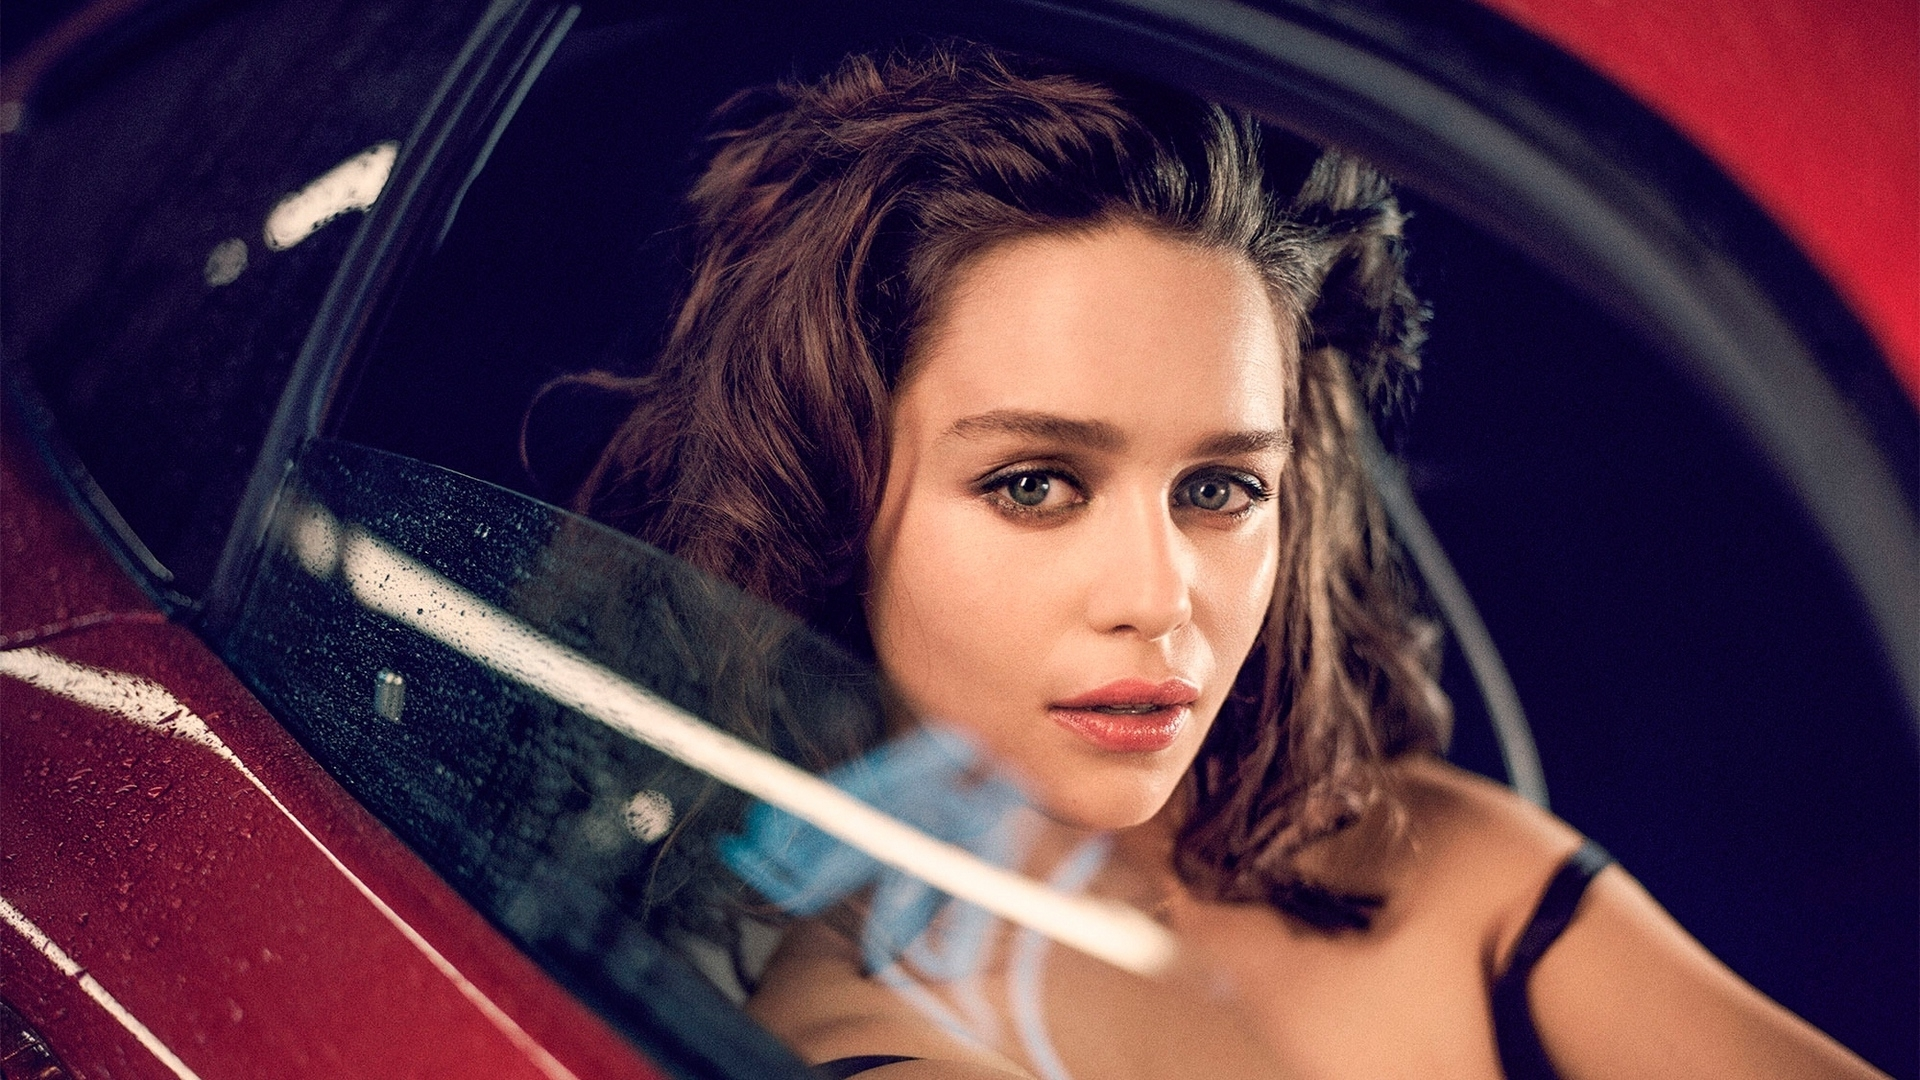 download wallpaper 1920x1080 emilia clarke, actress, brunette, car